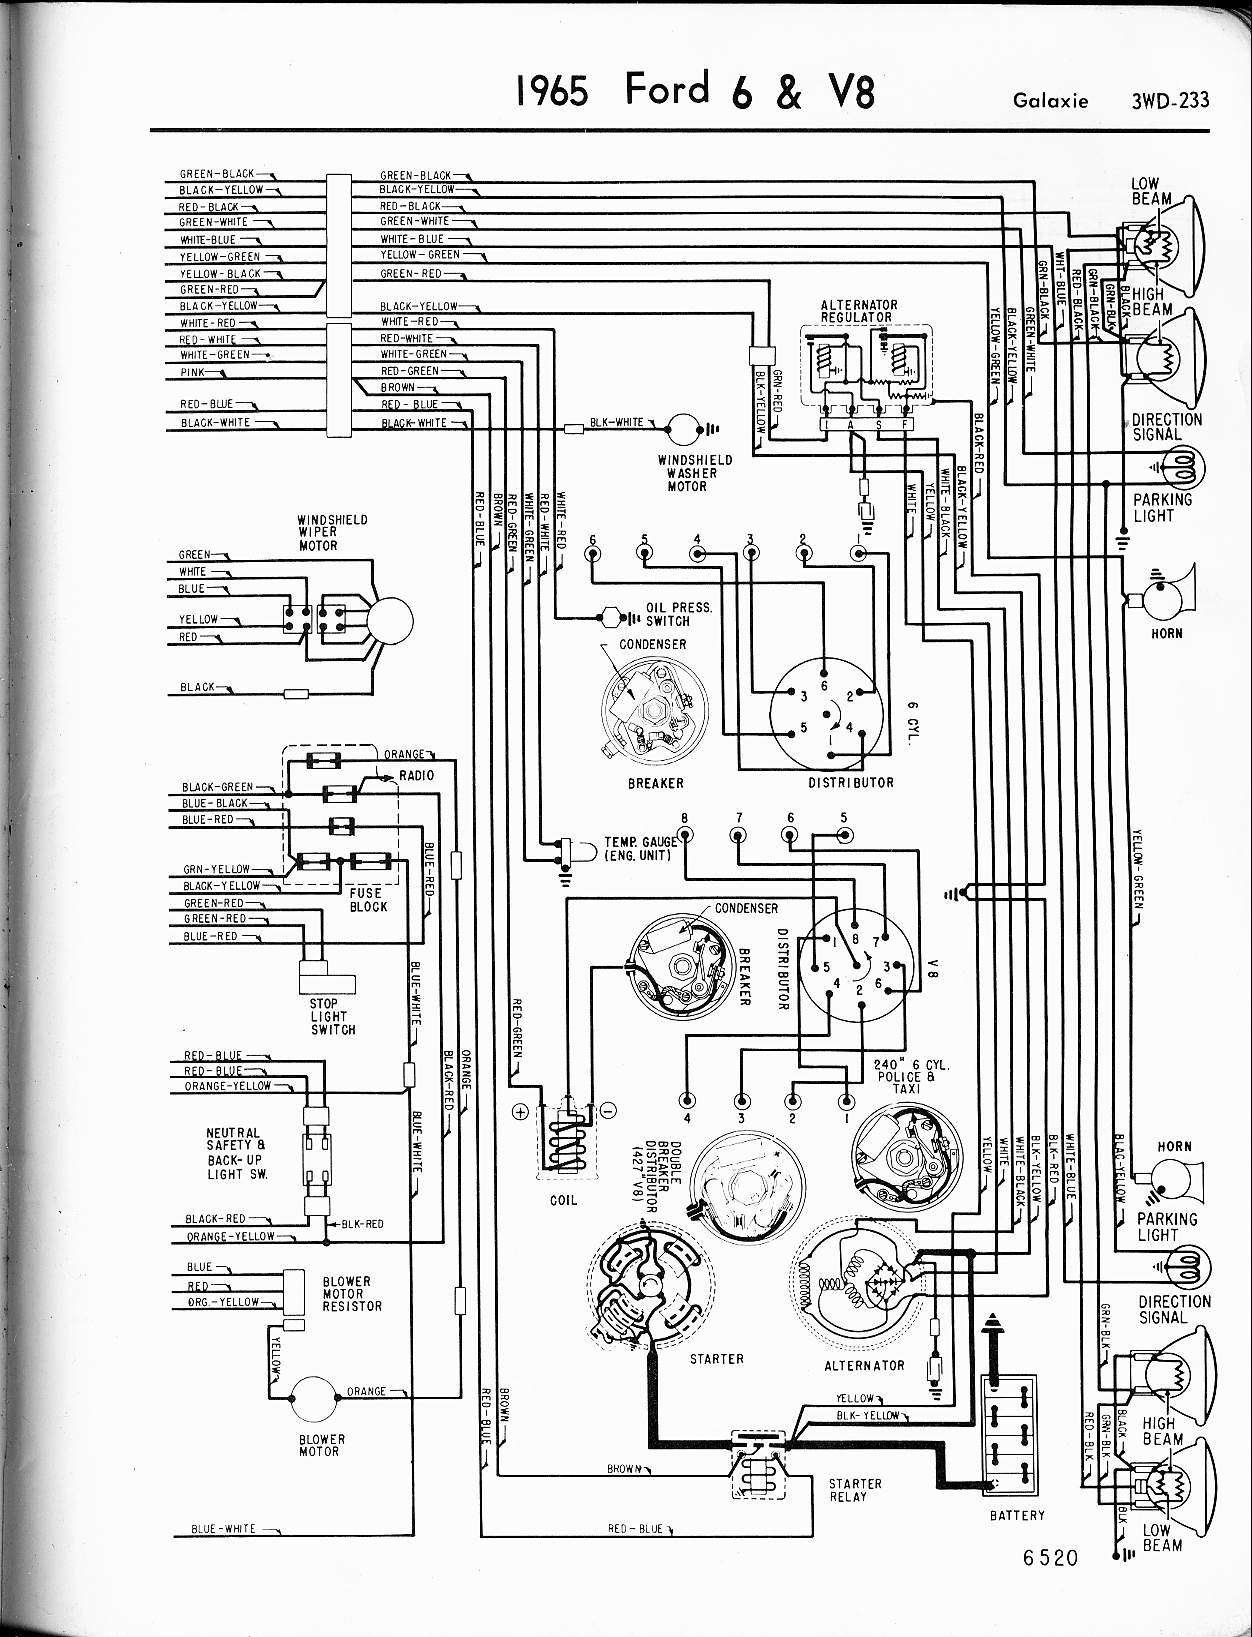 Chevy Truck Front End Parts Diagram moreover 2004 Ford Escape Wiring Diagram likewise Fordindex further 41rhd Fuse Number Radio Ford Explorer likewise 4tzhb Ford Ranger Xlt Horn Doesn T Blow Radio Don T. on 2004 ford explorer radio wiring diagram